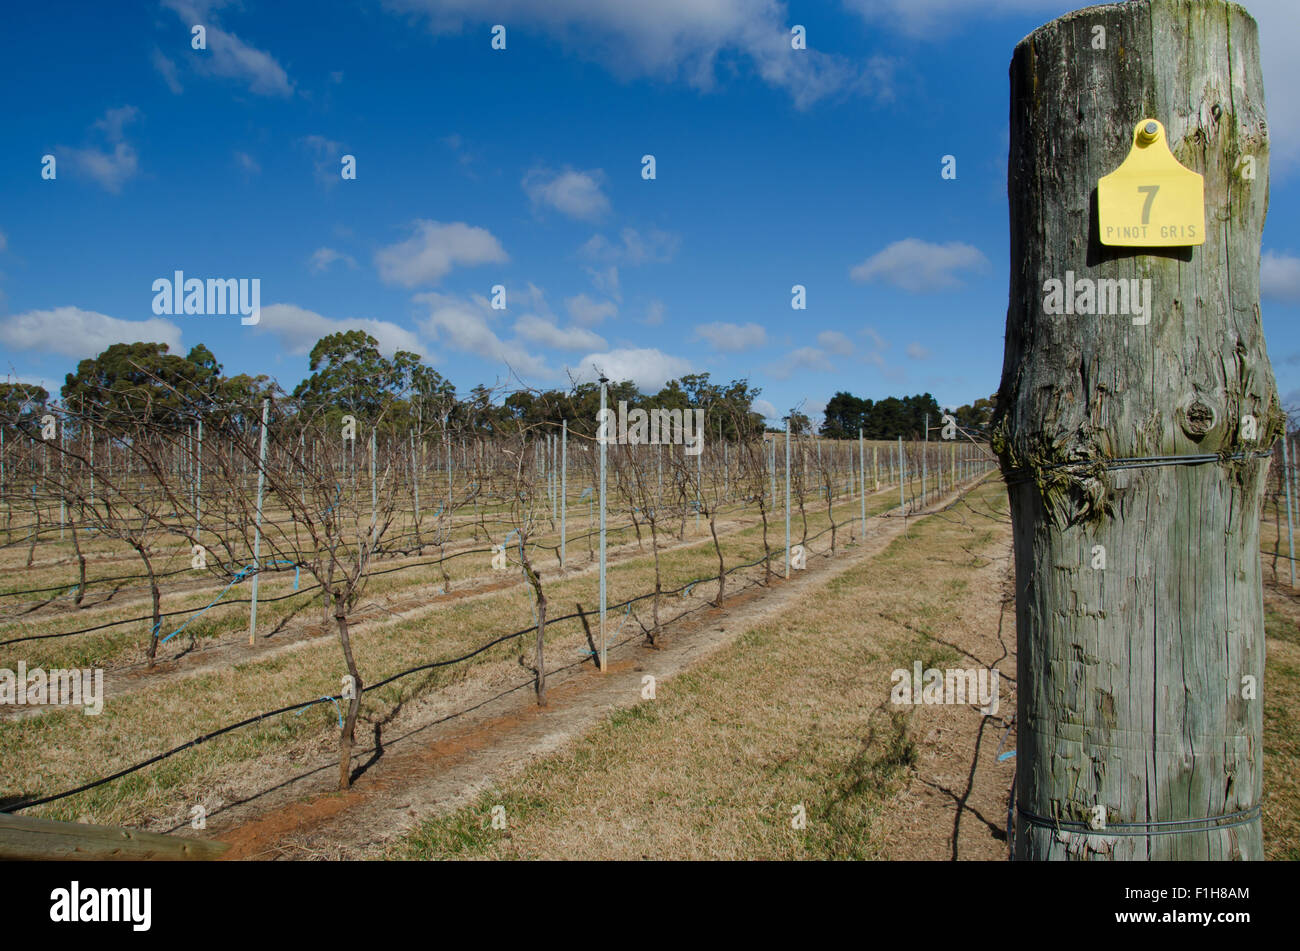 Australian Wines Stockfotos & Australian Wines Bilder - Alamy